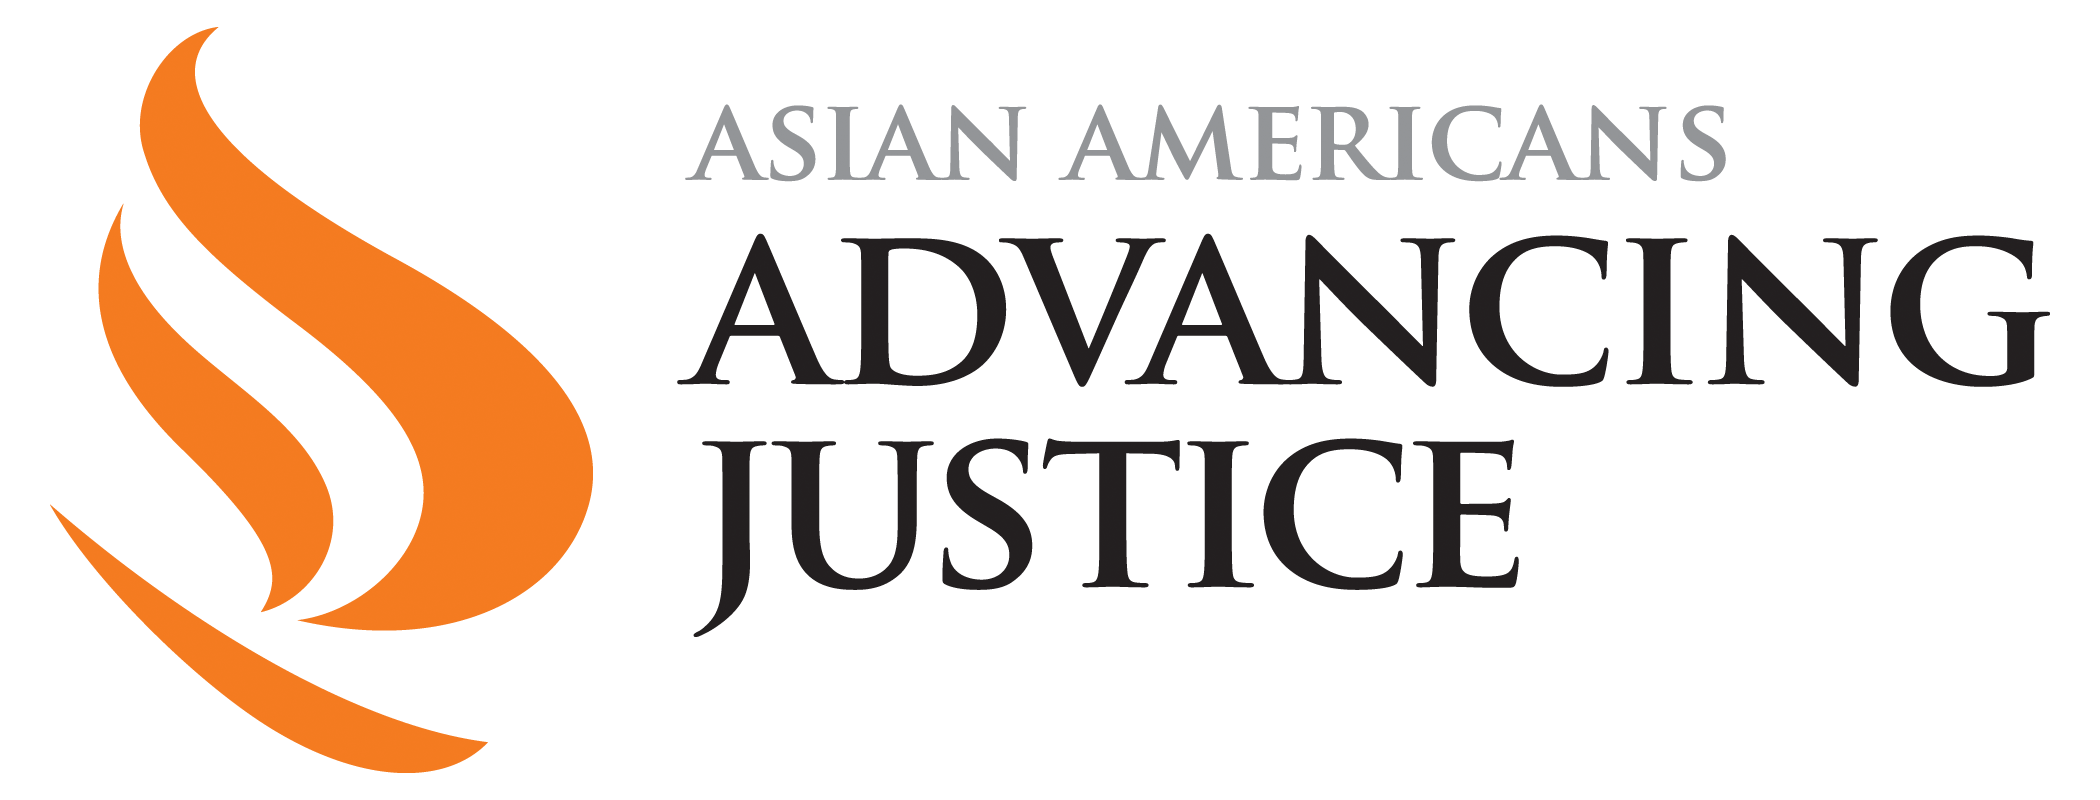 - Asian Americans Advancing Justice – LA1145 Wilshire Blvd, 2nd Floor Los Angeles 90017(213) 977-7500 | advancingjustice-la.org